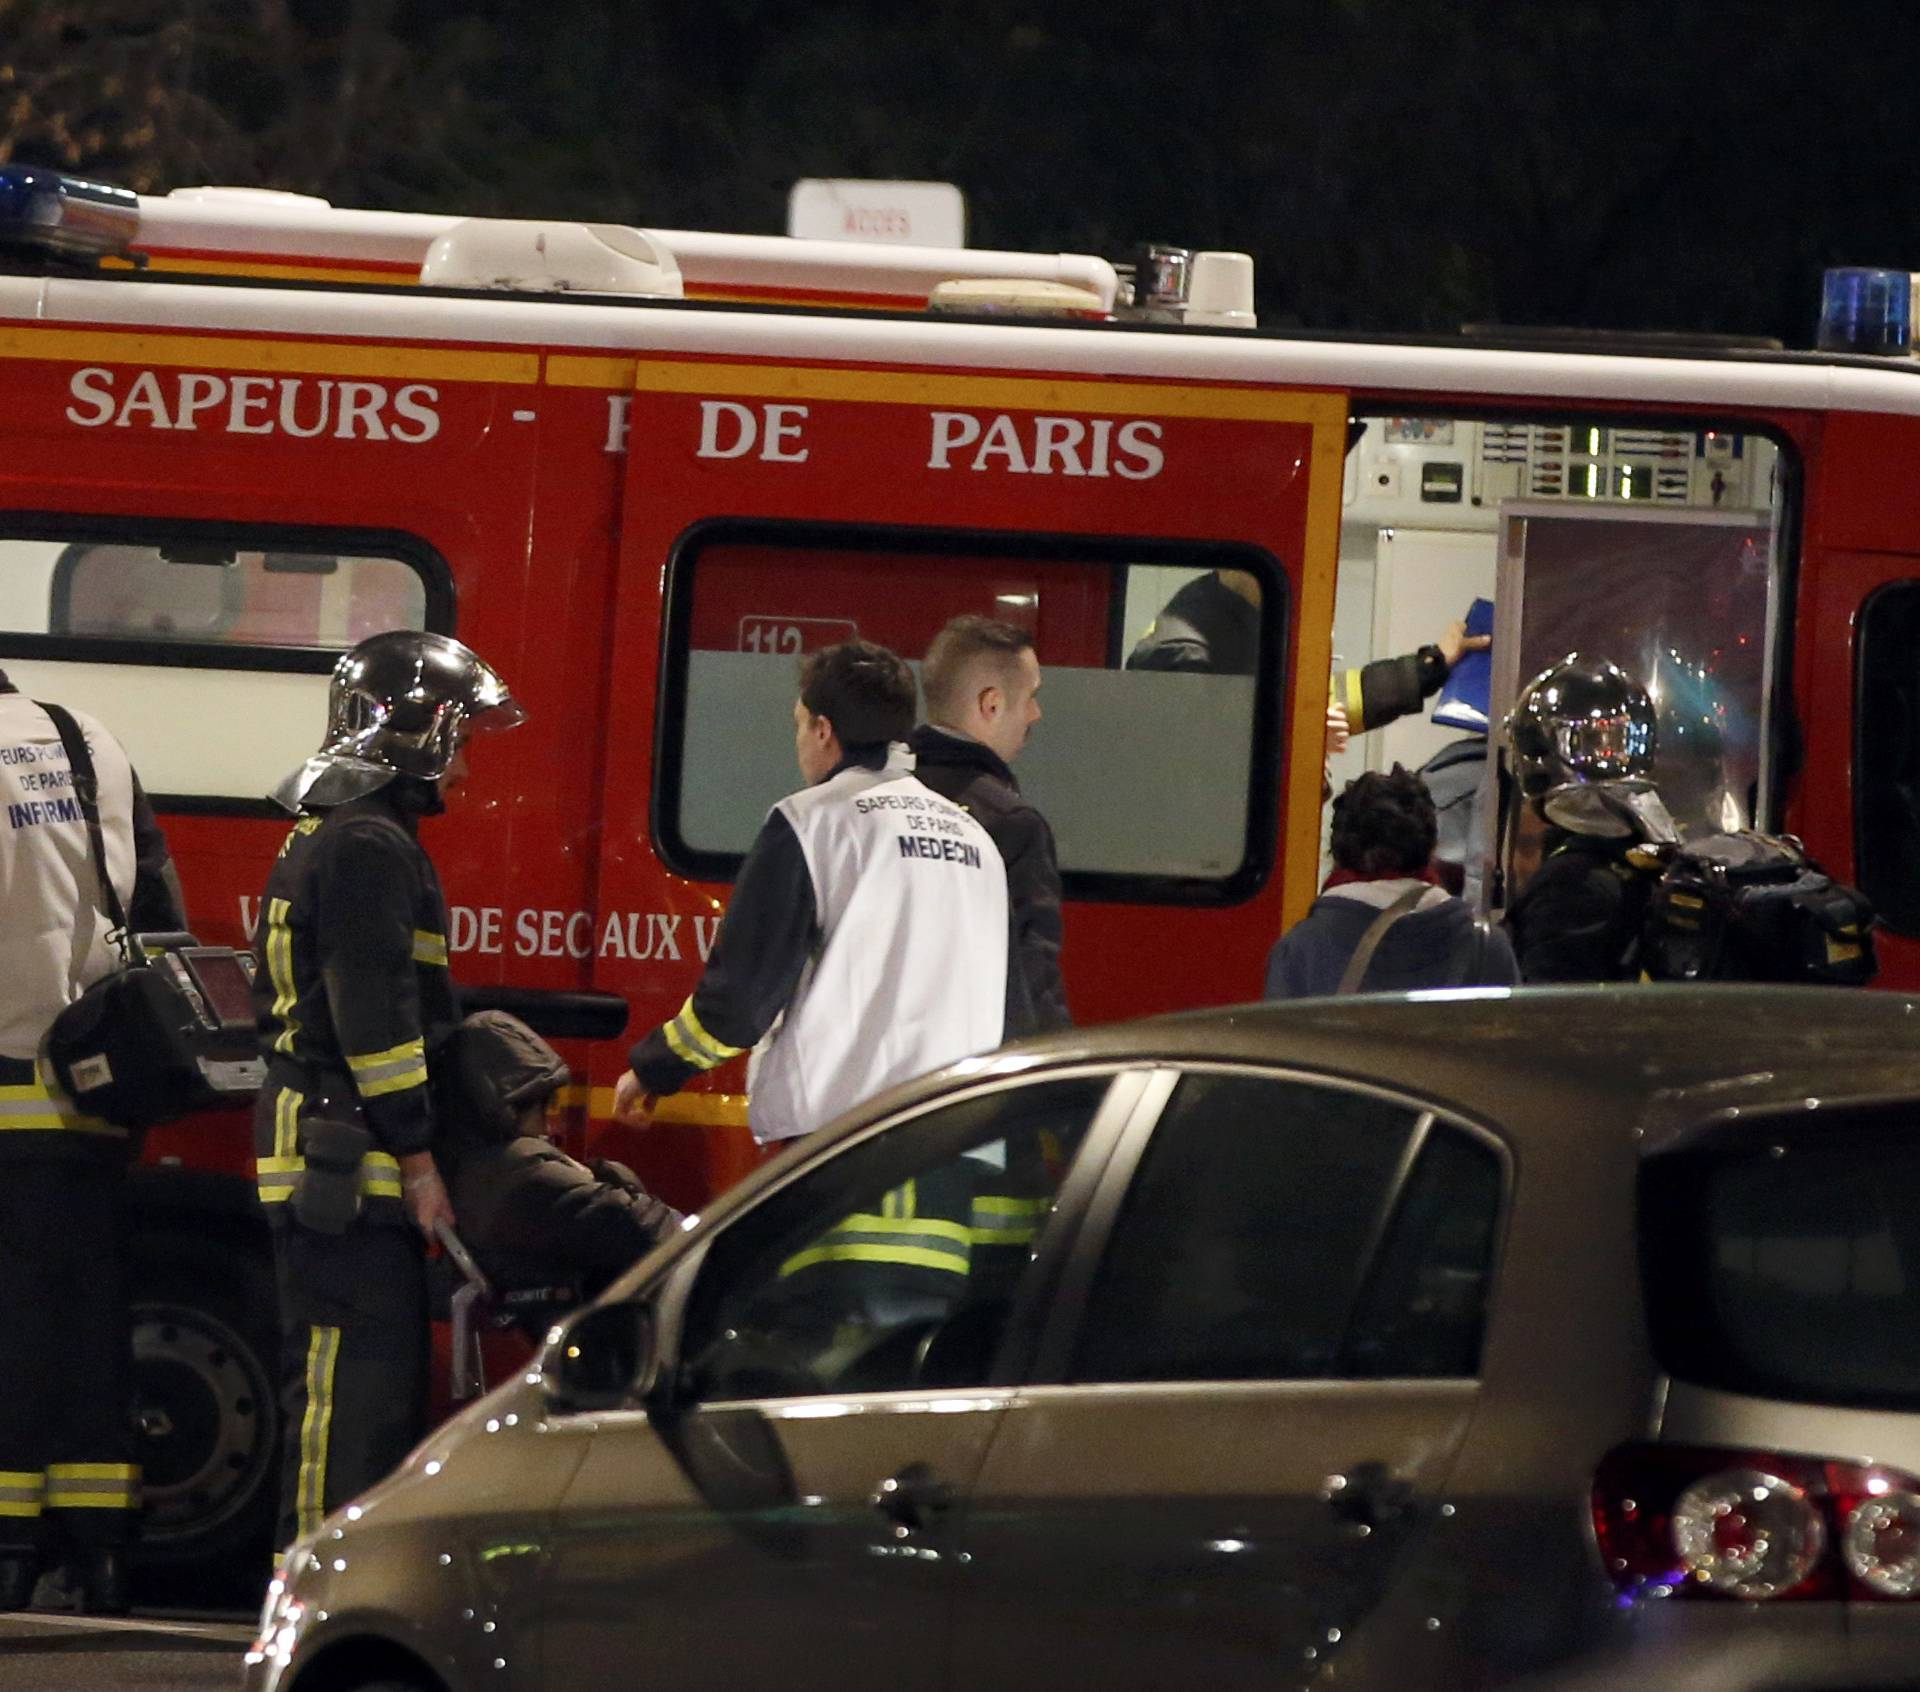 French firemen and doctors tend to a person who was one of six people in a travel agency when an armed man entered in what appears to be a robbery, according to a police source, in Paris